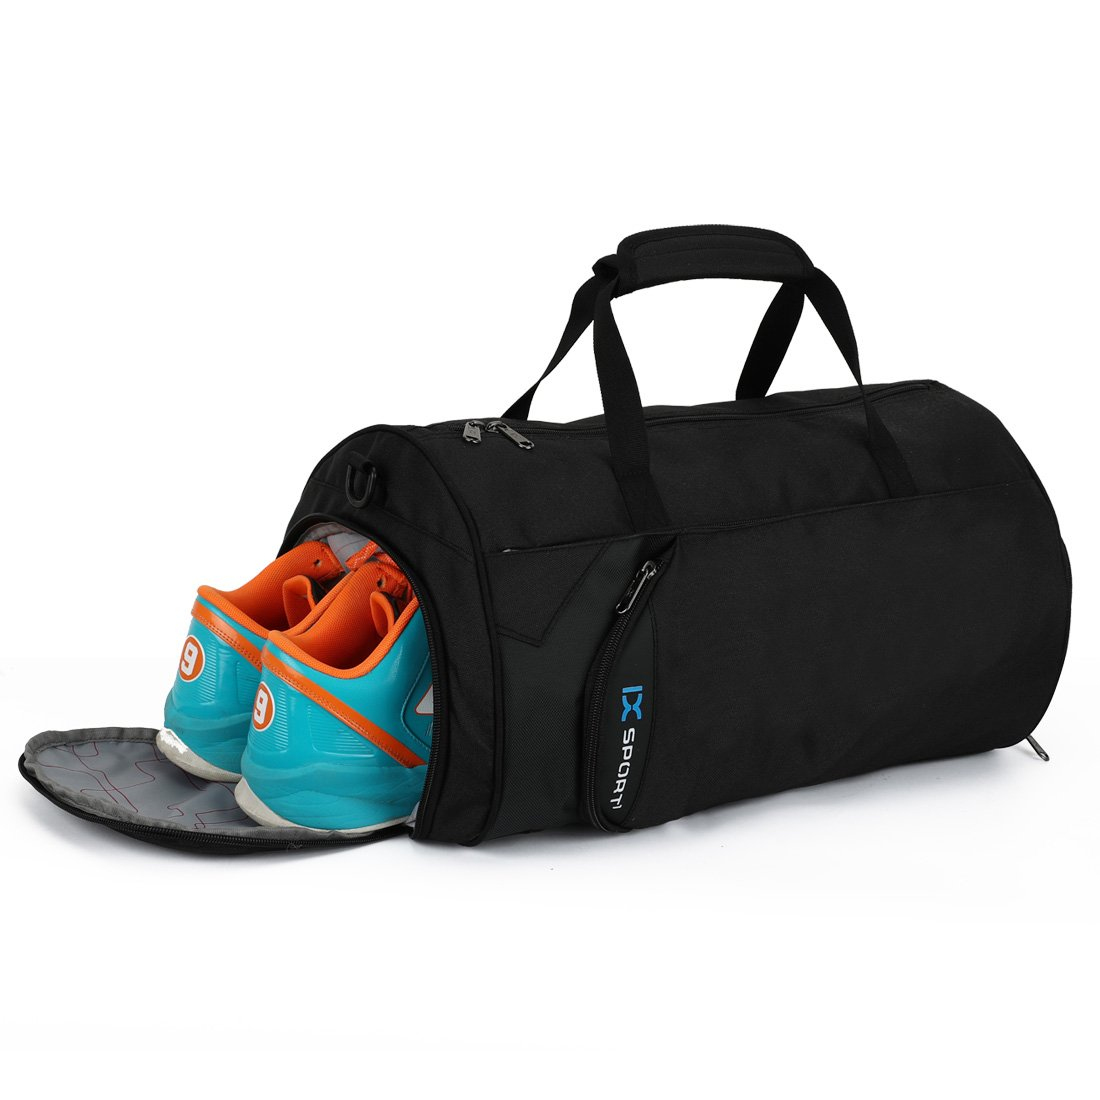 Xterra Paddle Boards >> INOXTO Fitness Sport Small Gym Bag with Shoes Compartment Waterproof Travel Duffel Bag for Women ...